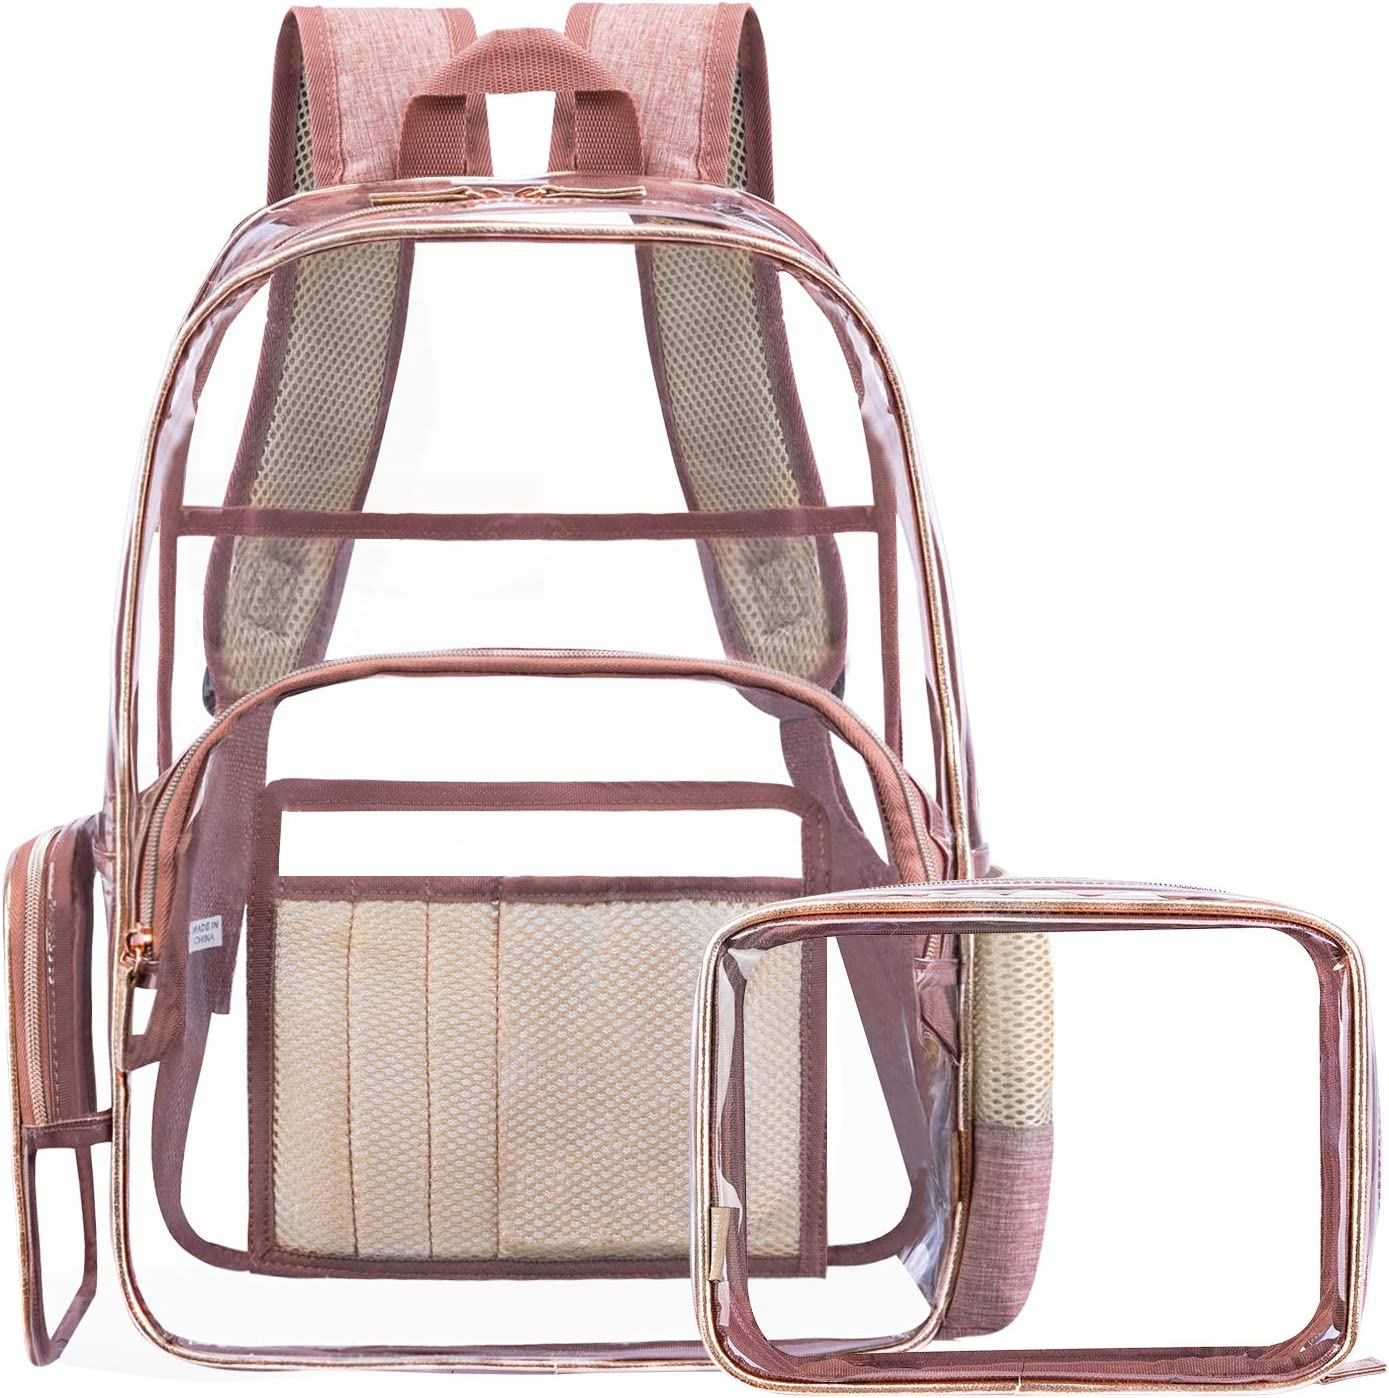 NiceEbag Clear Backpack with Cosmetic Bag Transparent PVC Backpack See Through School Bookbag with Small Pouch Fit 15.6 Inch Laptop for Women Girls,Rose Gold